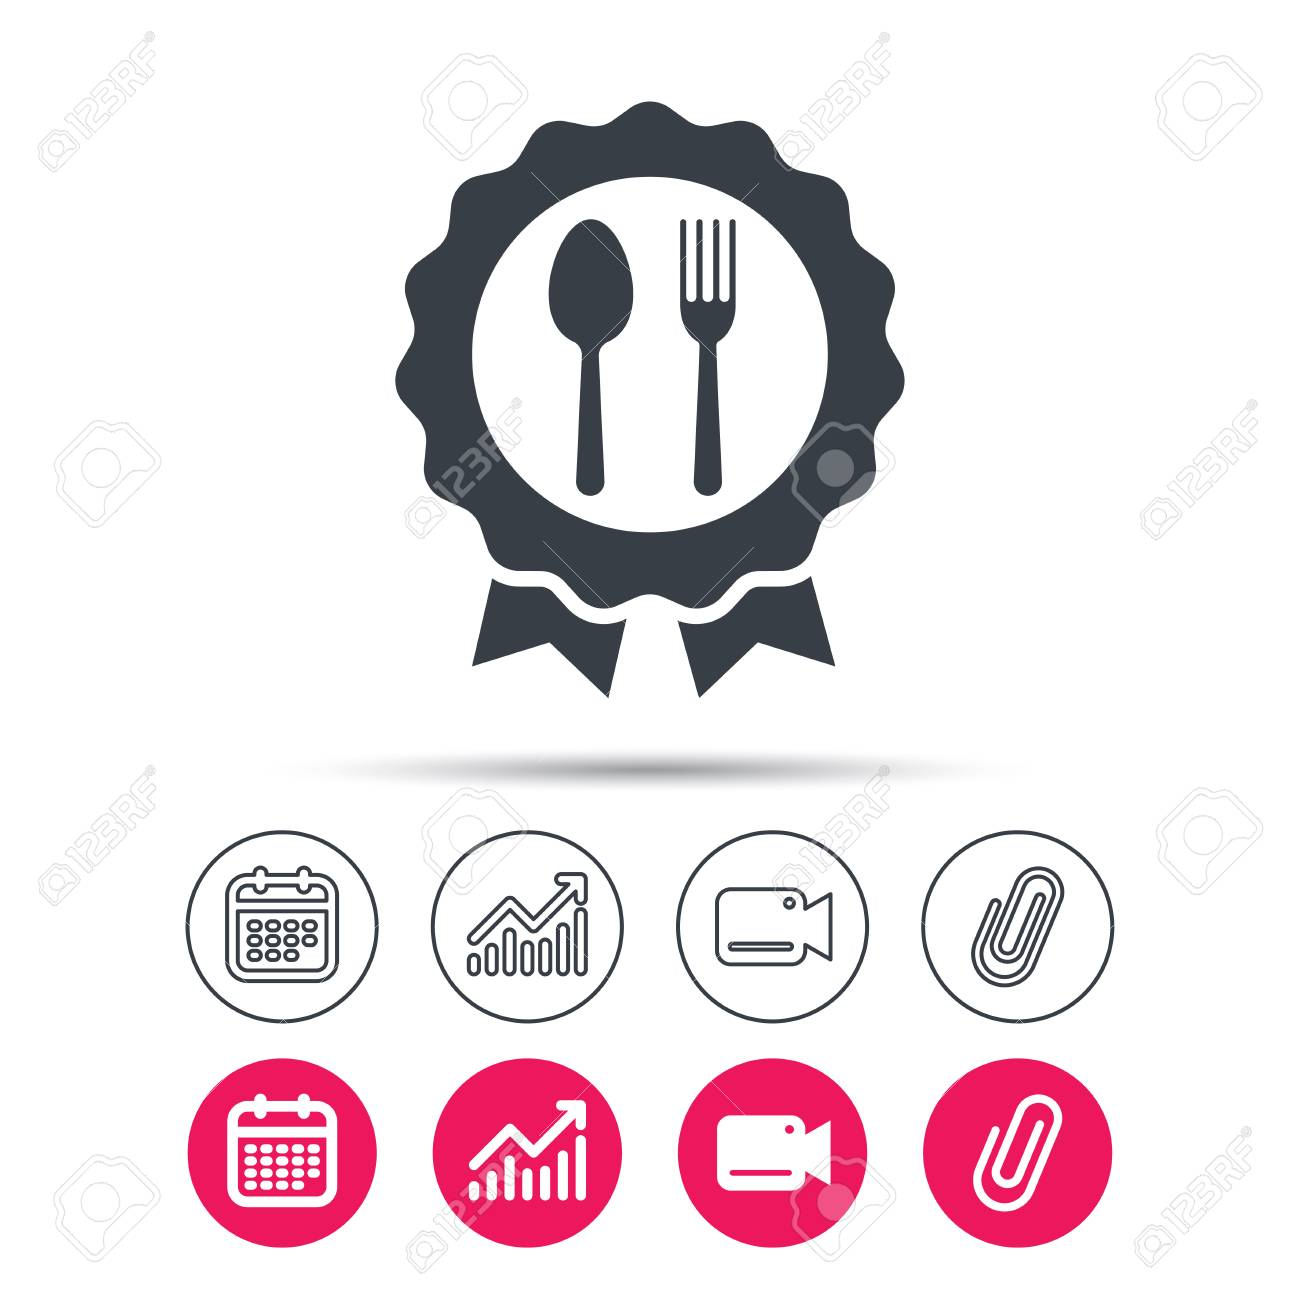 Award Medal Icon Food Winner Emblem Symbol Fork And Spoon Signs